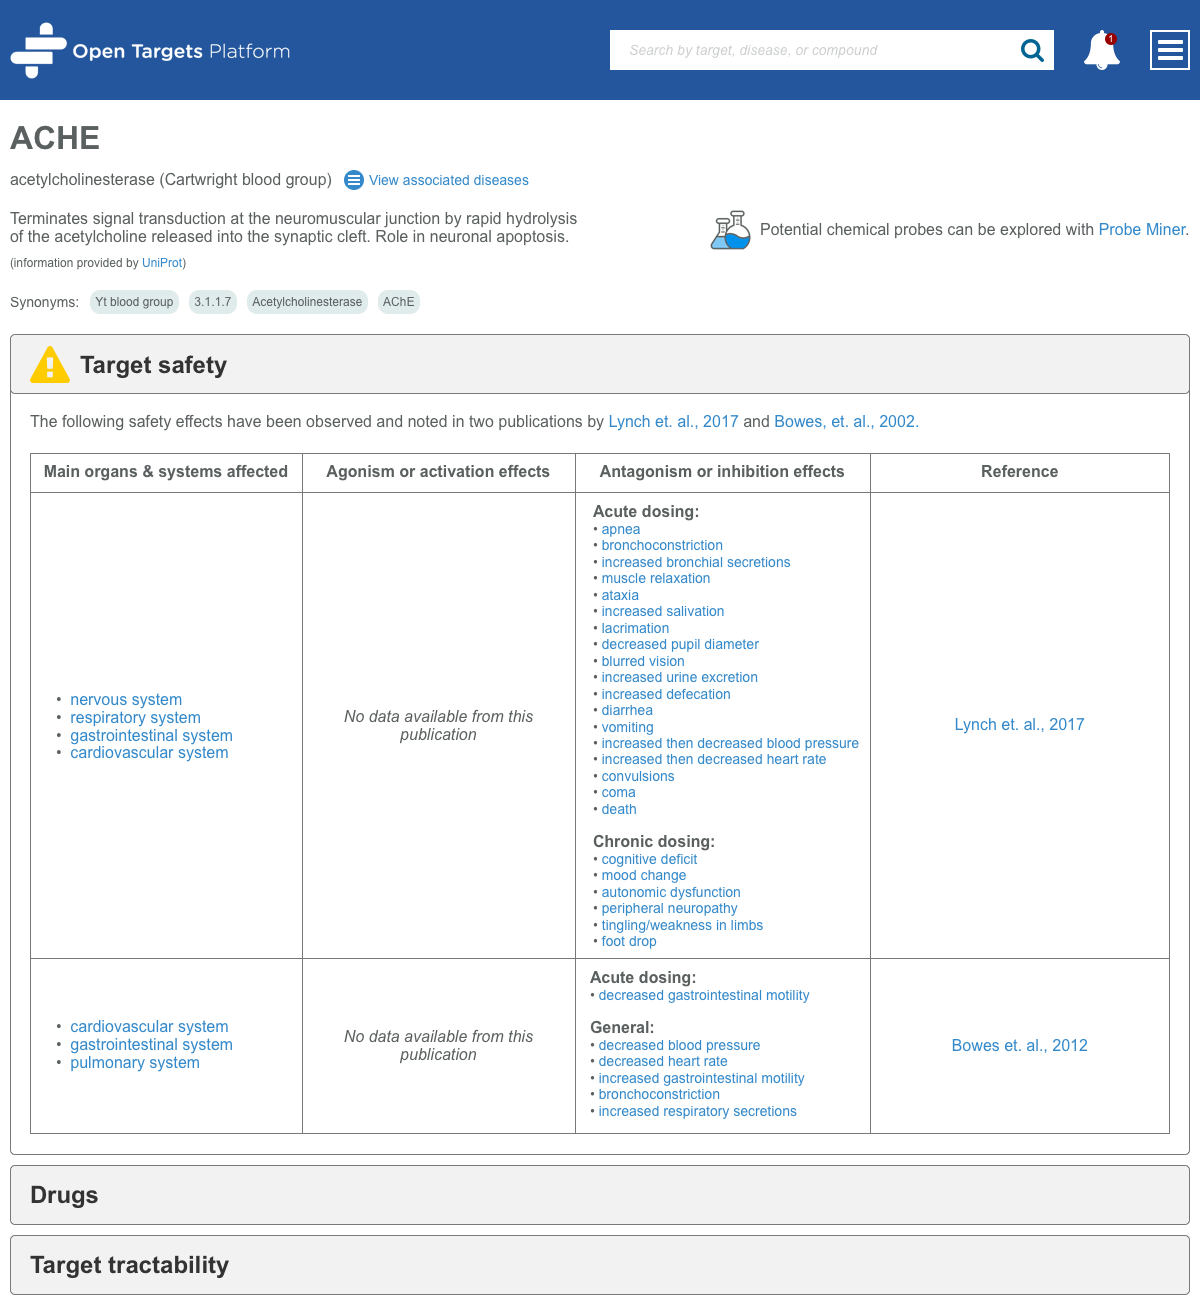 safety_data_mockup_target_profile_page_gh